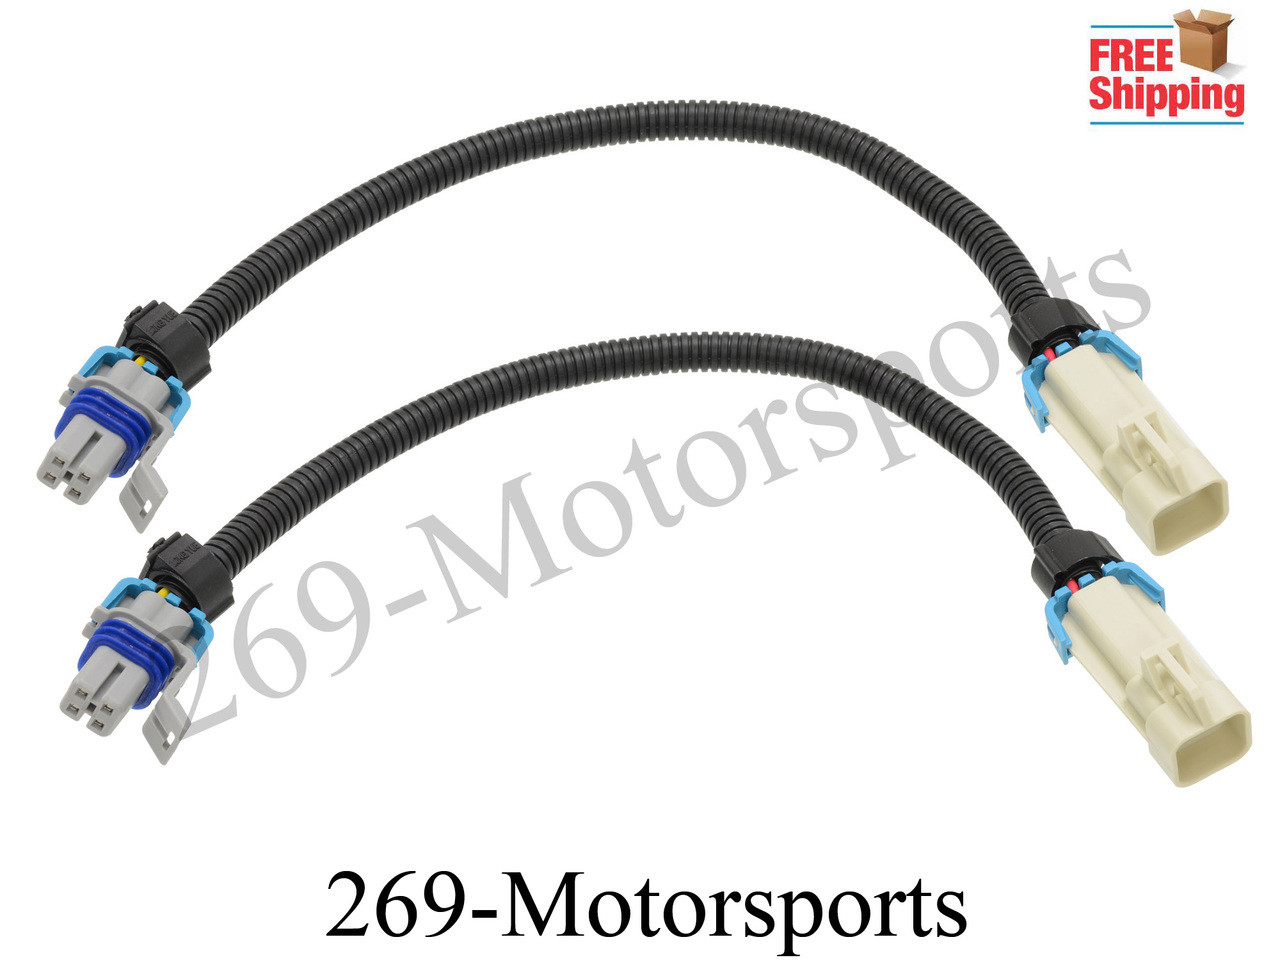 small resolution of o2 oxygen sensor header extension wire harness fits ls1 ls2 04 06 gto cts v 12